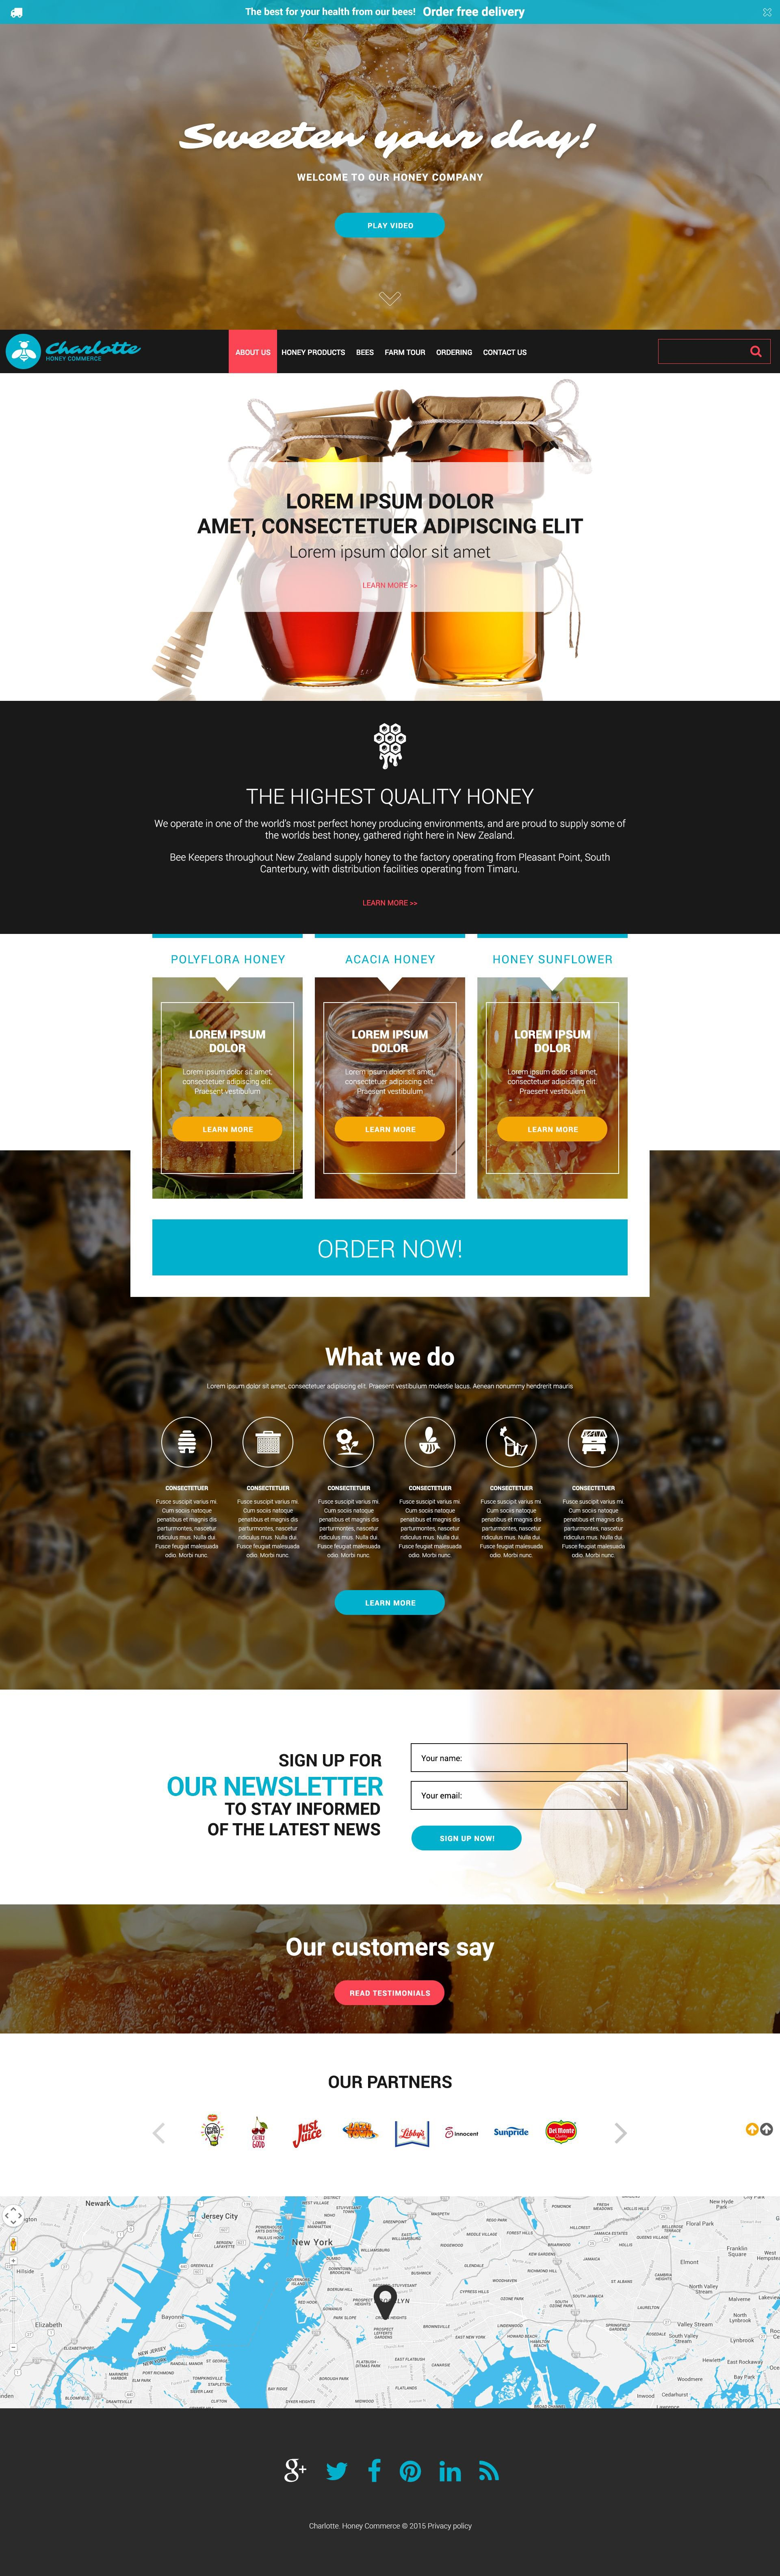 The Honey Production Responsive Javascript Animated Design 53903, one of the best website templates of its kind (food & drink, most popular), also known as honey production website template, commerce website template, bee website template, hive website template, sweet health-giving website template, medicinal website template, products website template, product website template, farm website template, quality and related with honey production, commerce, bee, hive, sweet health-giving, medicinal, products, product, farm, quality, etc.